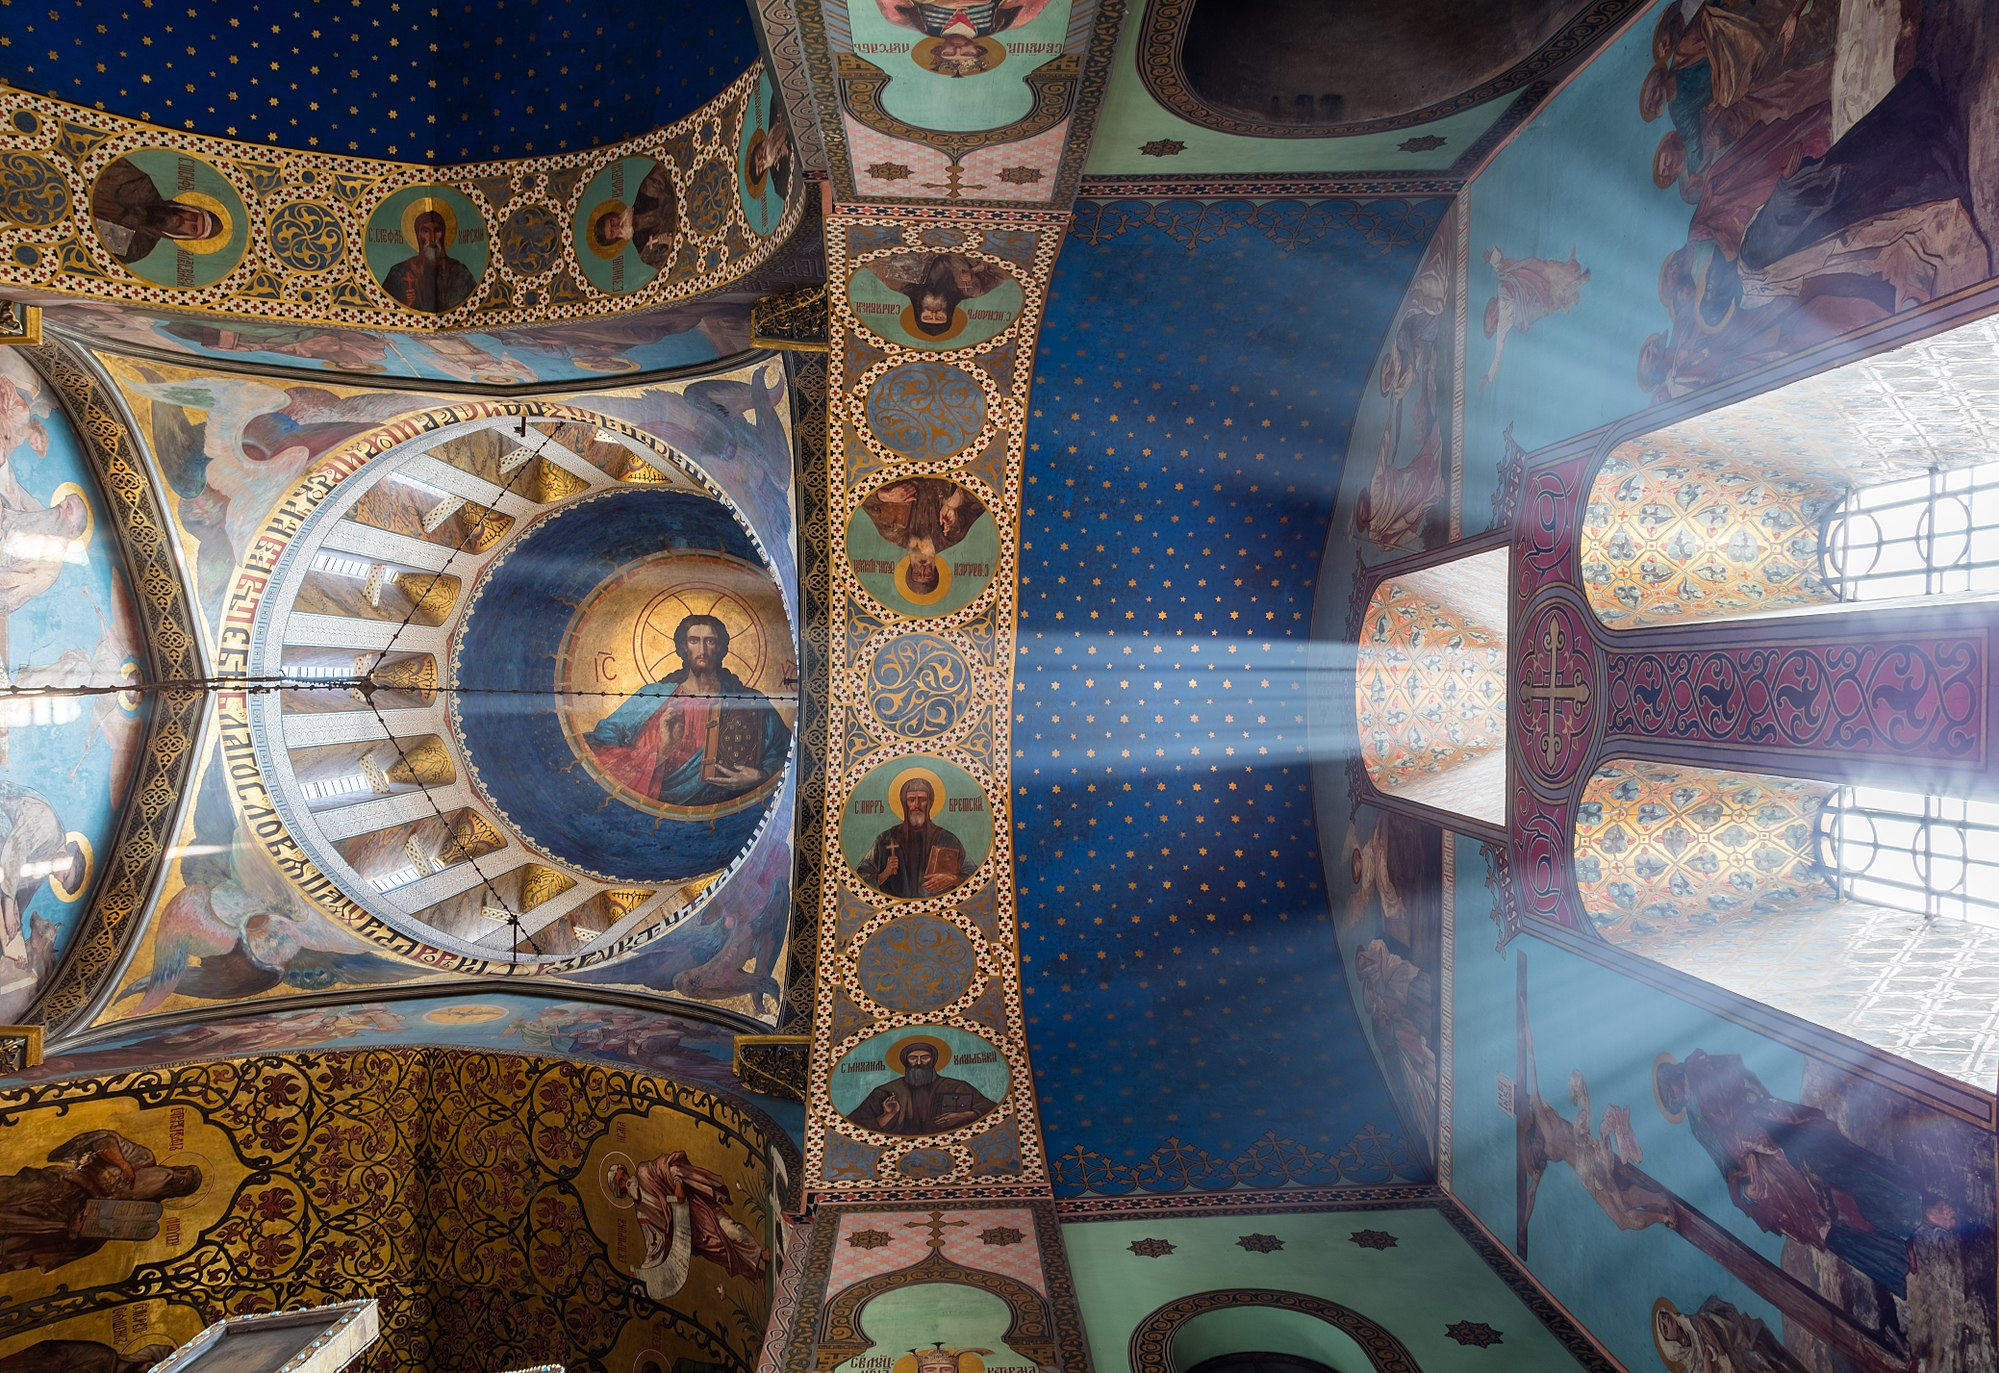 Ceiling of the Sioni Cathedral, a Georgian Orthodox cathedral in Tbilisi, capital of Georgia. The cathedral is situated in historic Sionis Kucha (Sioni Street) in downtown Tbilisi. It was initially built in the 6th and 7th centuries. Since then, it has been destroyed by foreign invaders and reconstructed several times. The current church is based on a 13th-century version with some changes from the 17th to 19th centuries. The Sioni Cathedral was the main Georgian Orthodox Cathedral and the seat of Catholicos-Patriarch of All Georgia until the Holy Trinity Cathedral was consecrated in 2004.